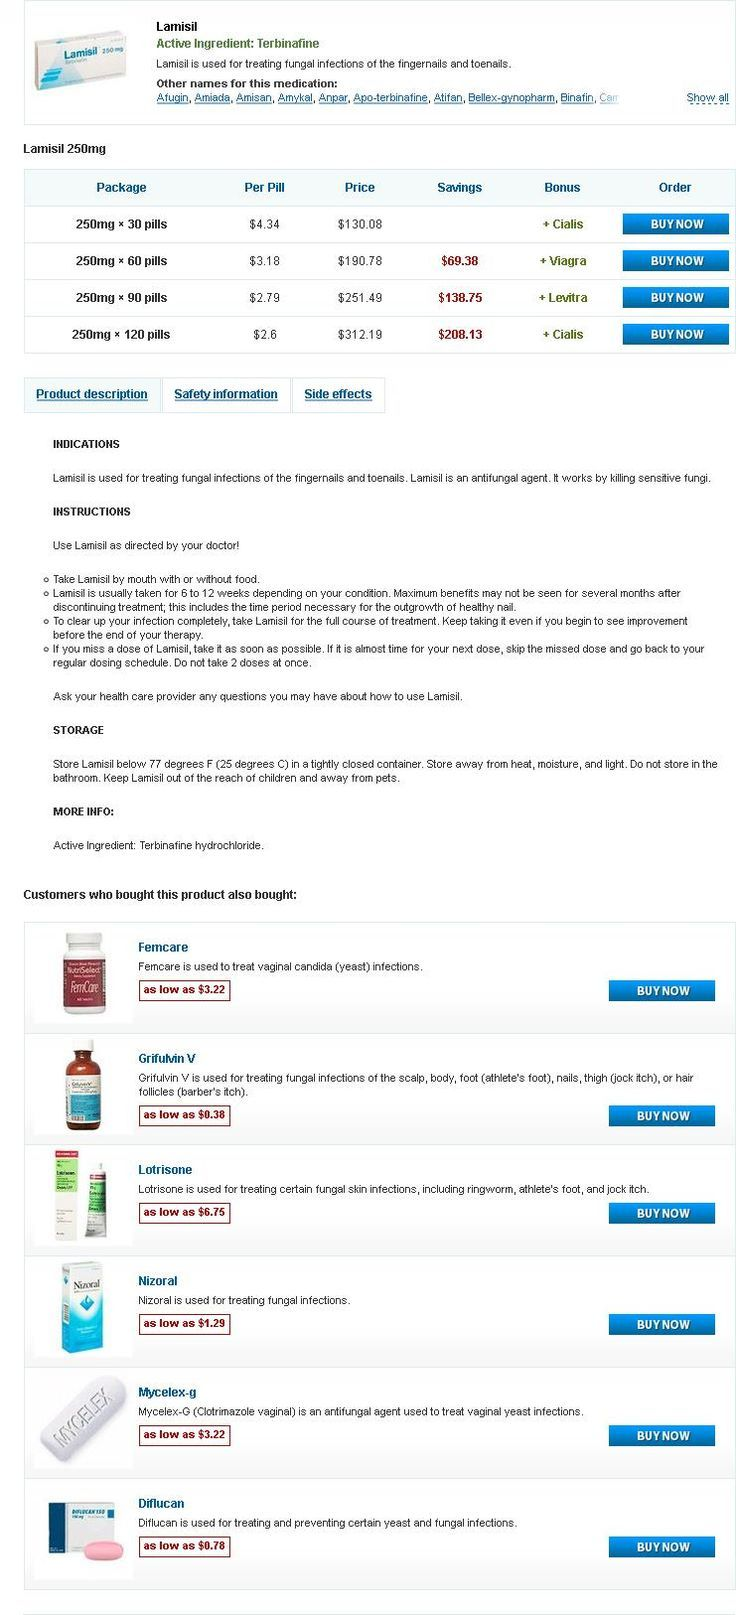 Buy Nafin: Nafin is used for treating fungal infections of the